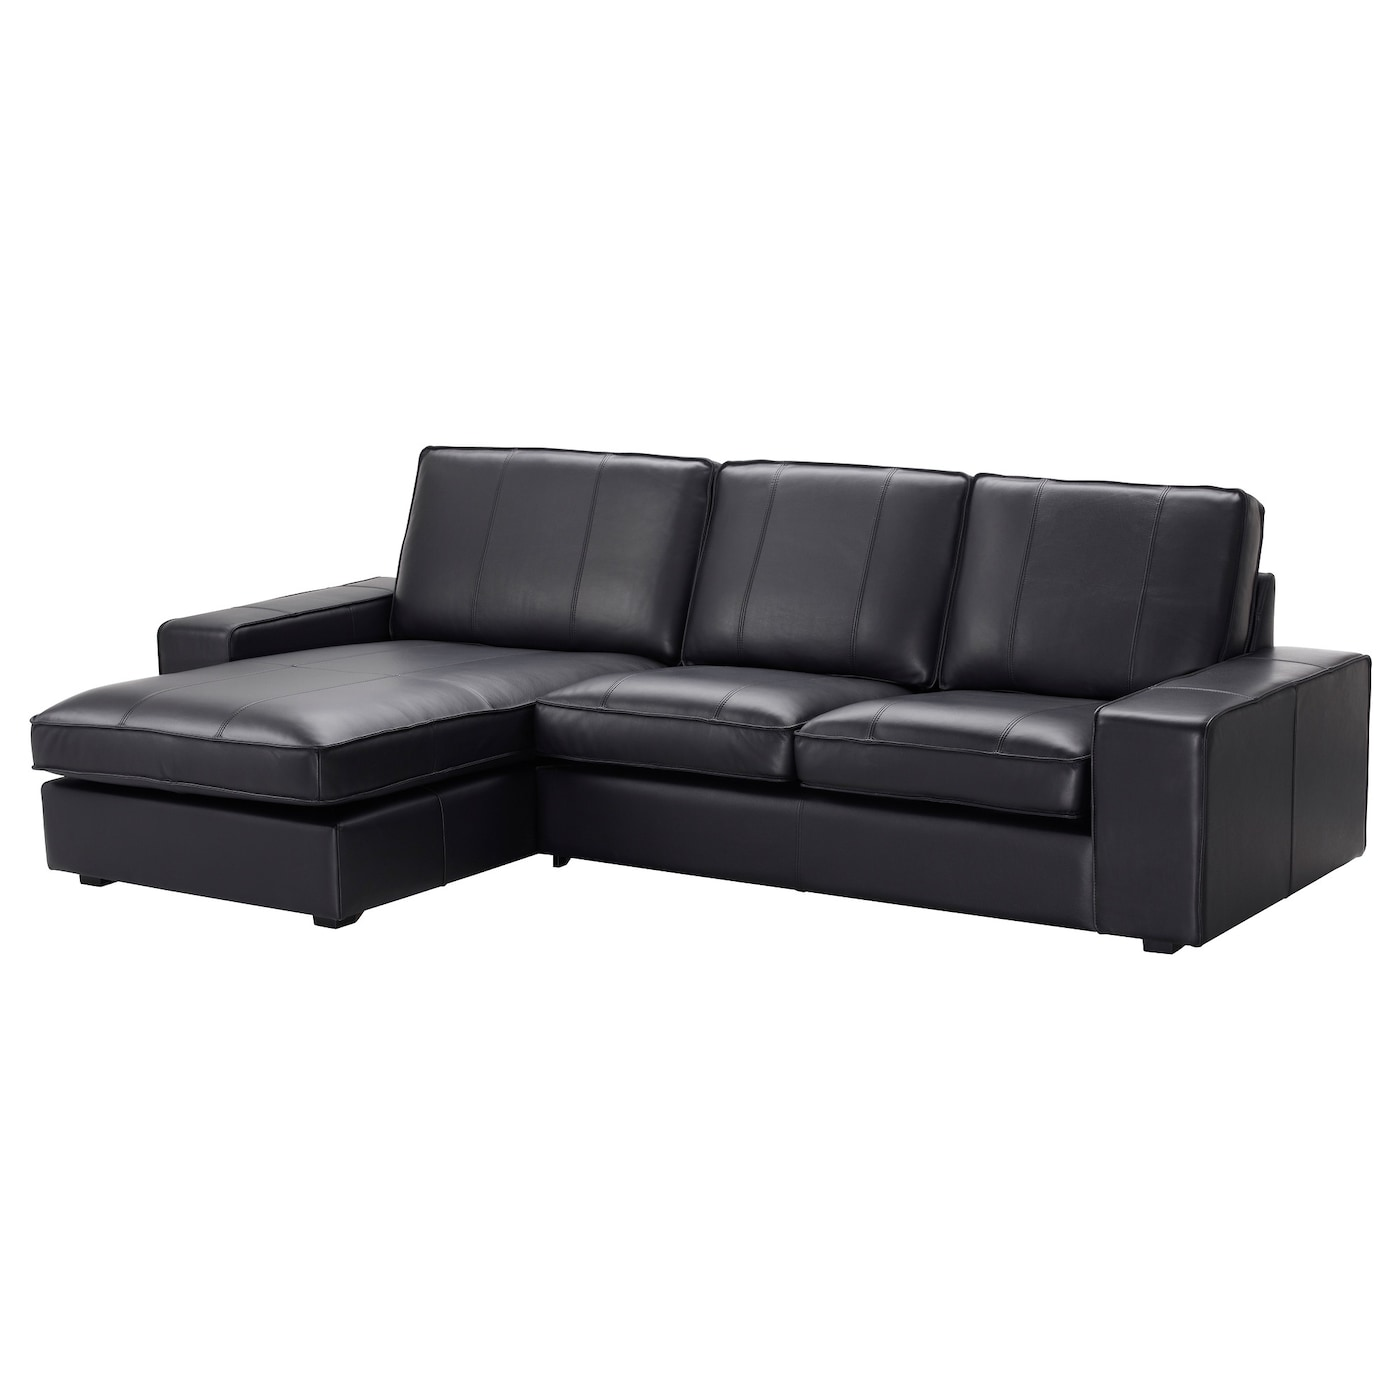 KIVIK 3 seat sofa With chaise longue grann bomstad black IKEA